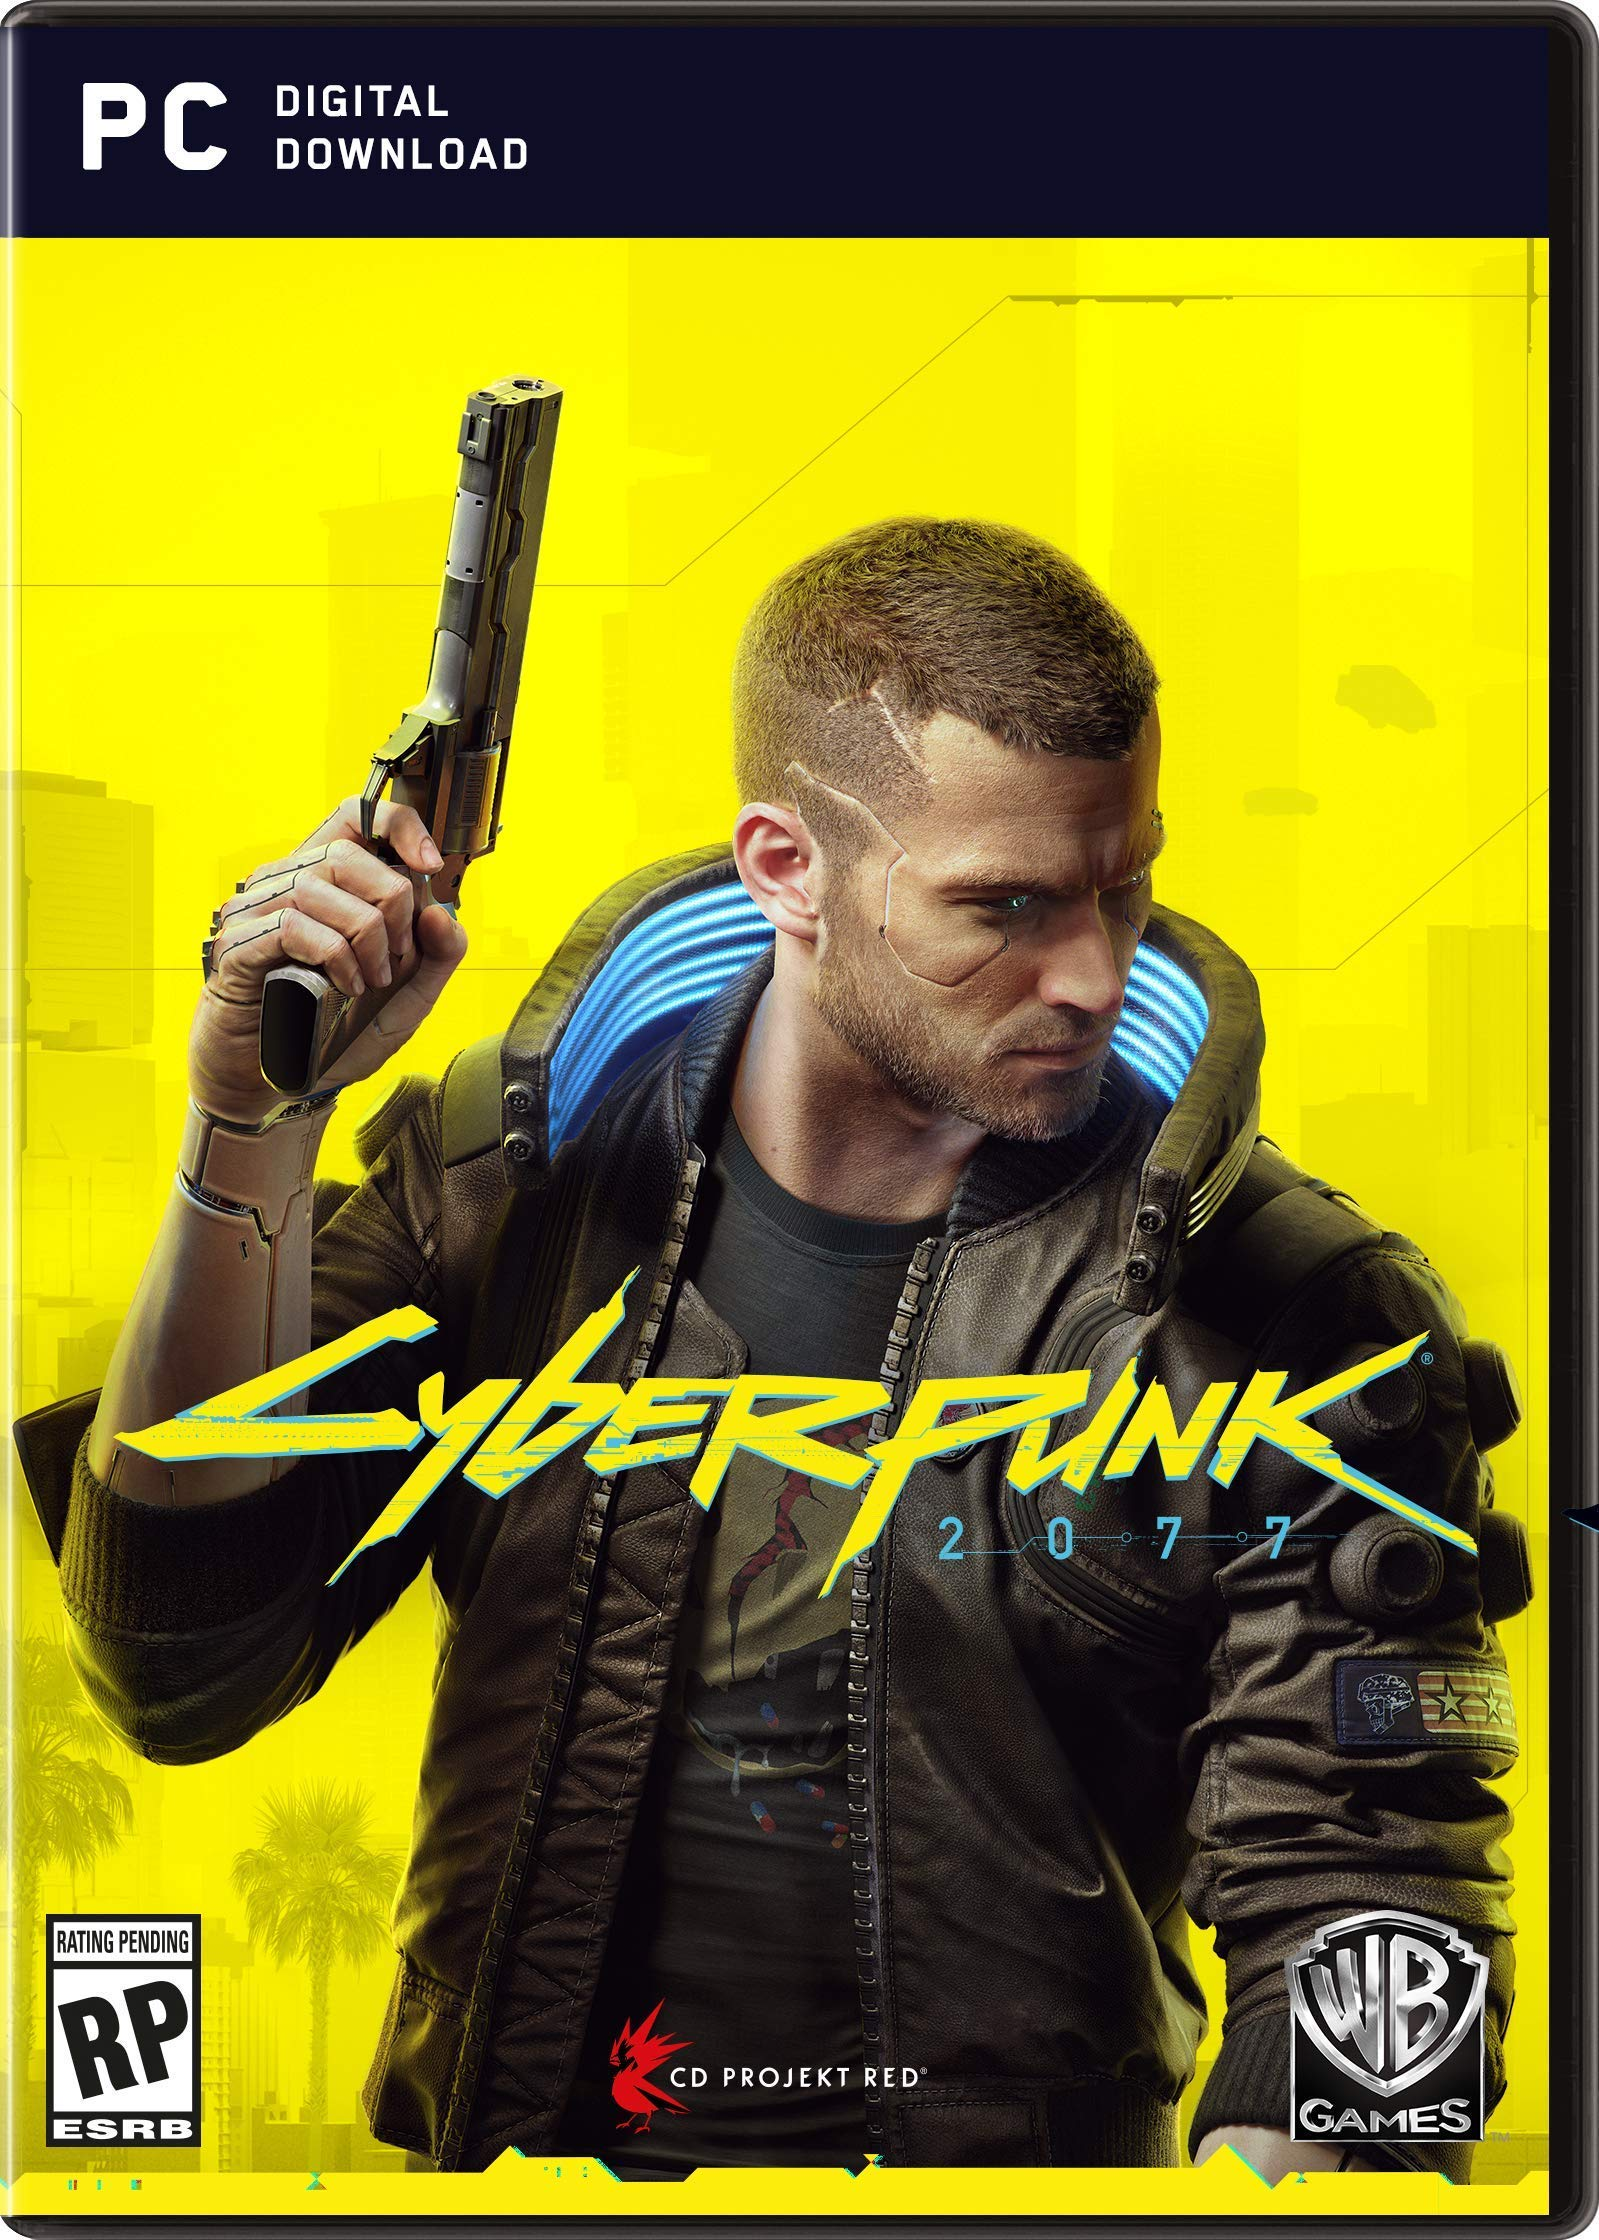 Cyberpunk 2077 - PC by WB Games